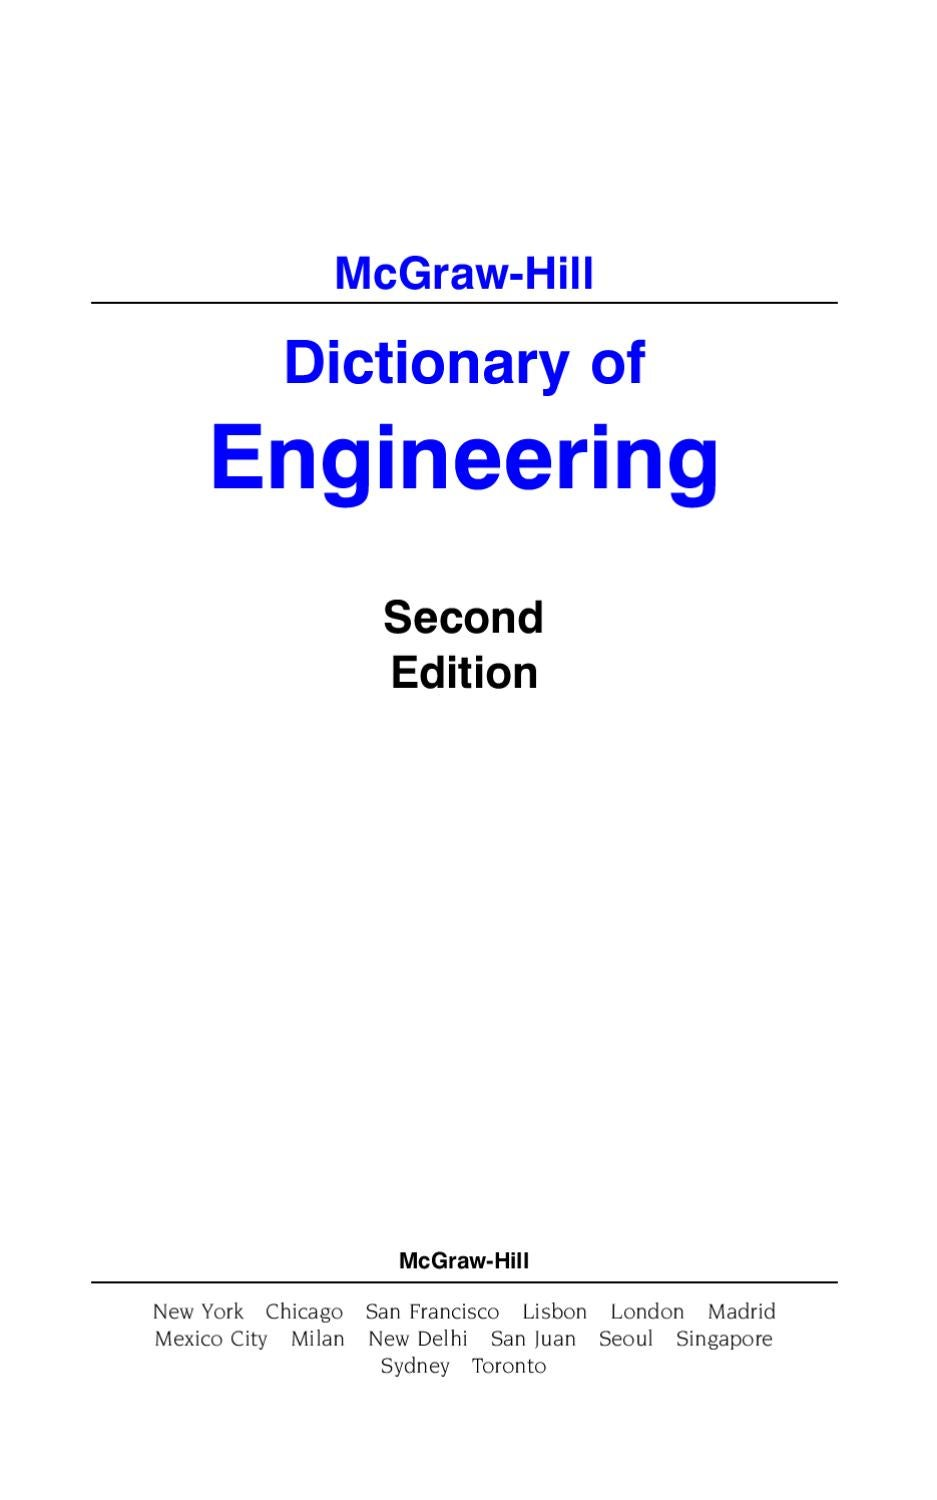 Engineering definitions a l by zach arneil issuu publicscrutiny Image collections